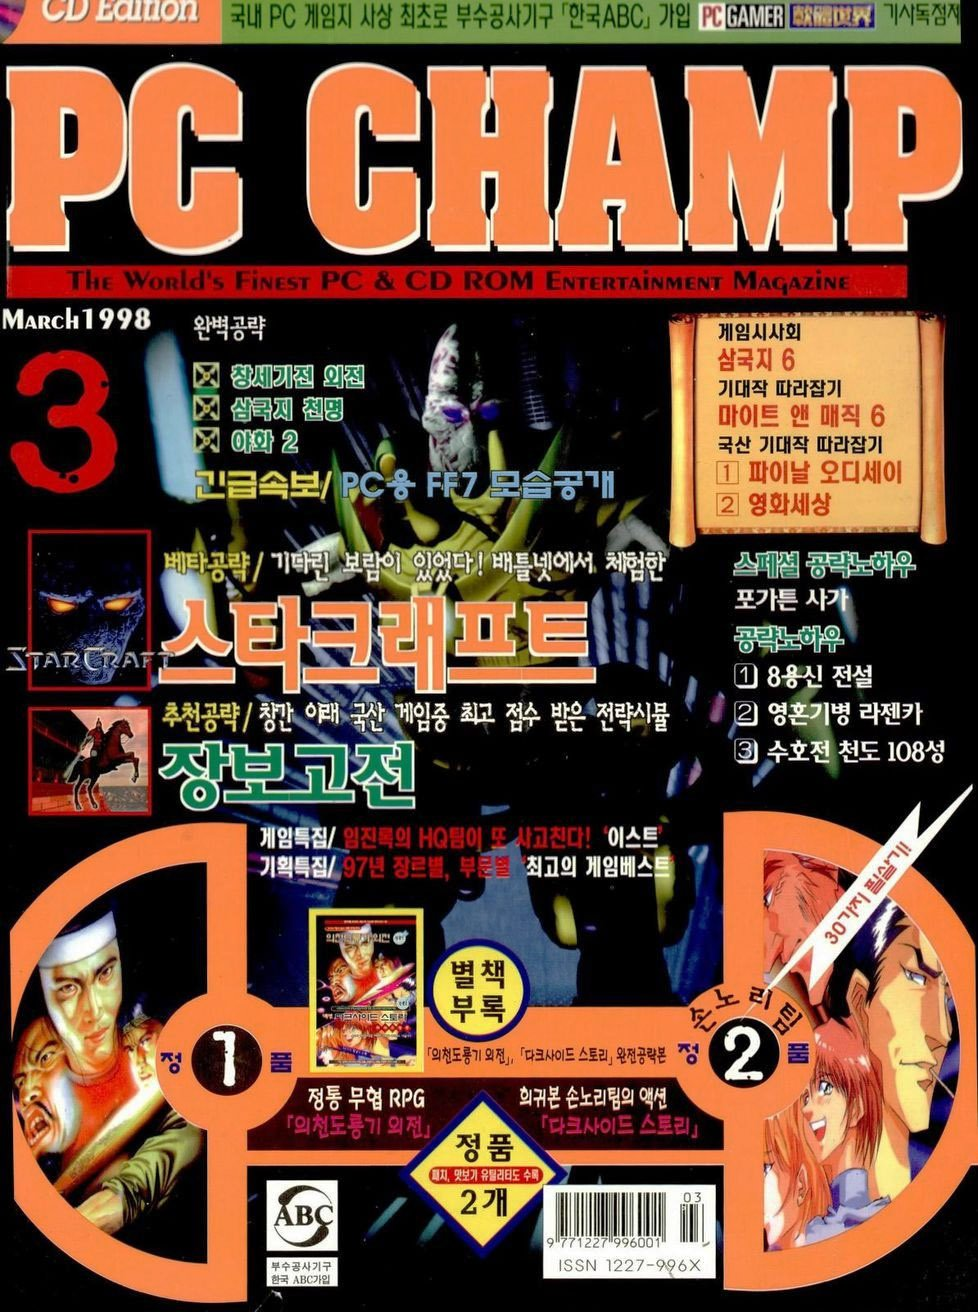 PC Champ Issue 32 (March 1998)